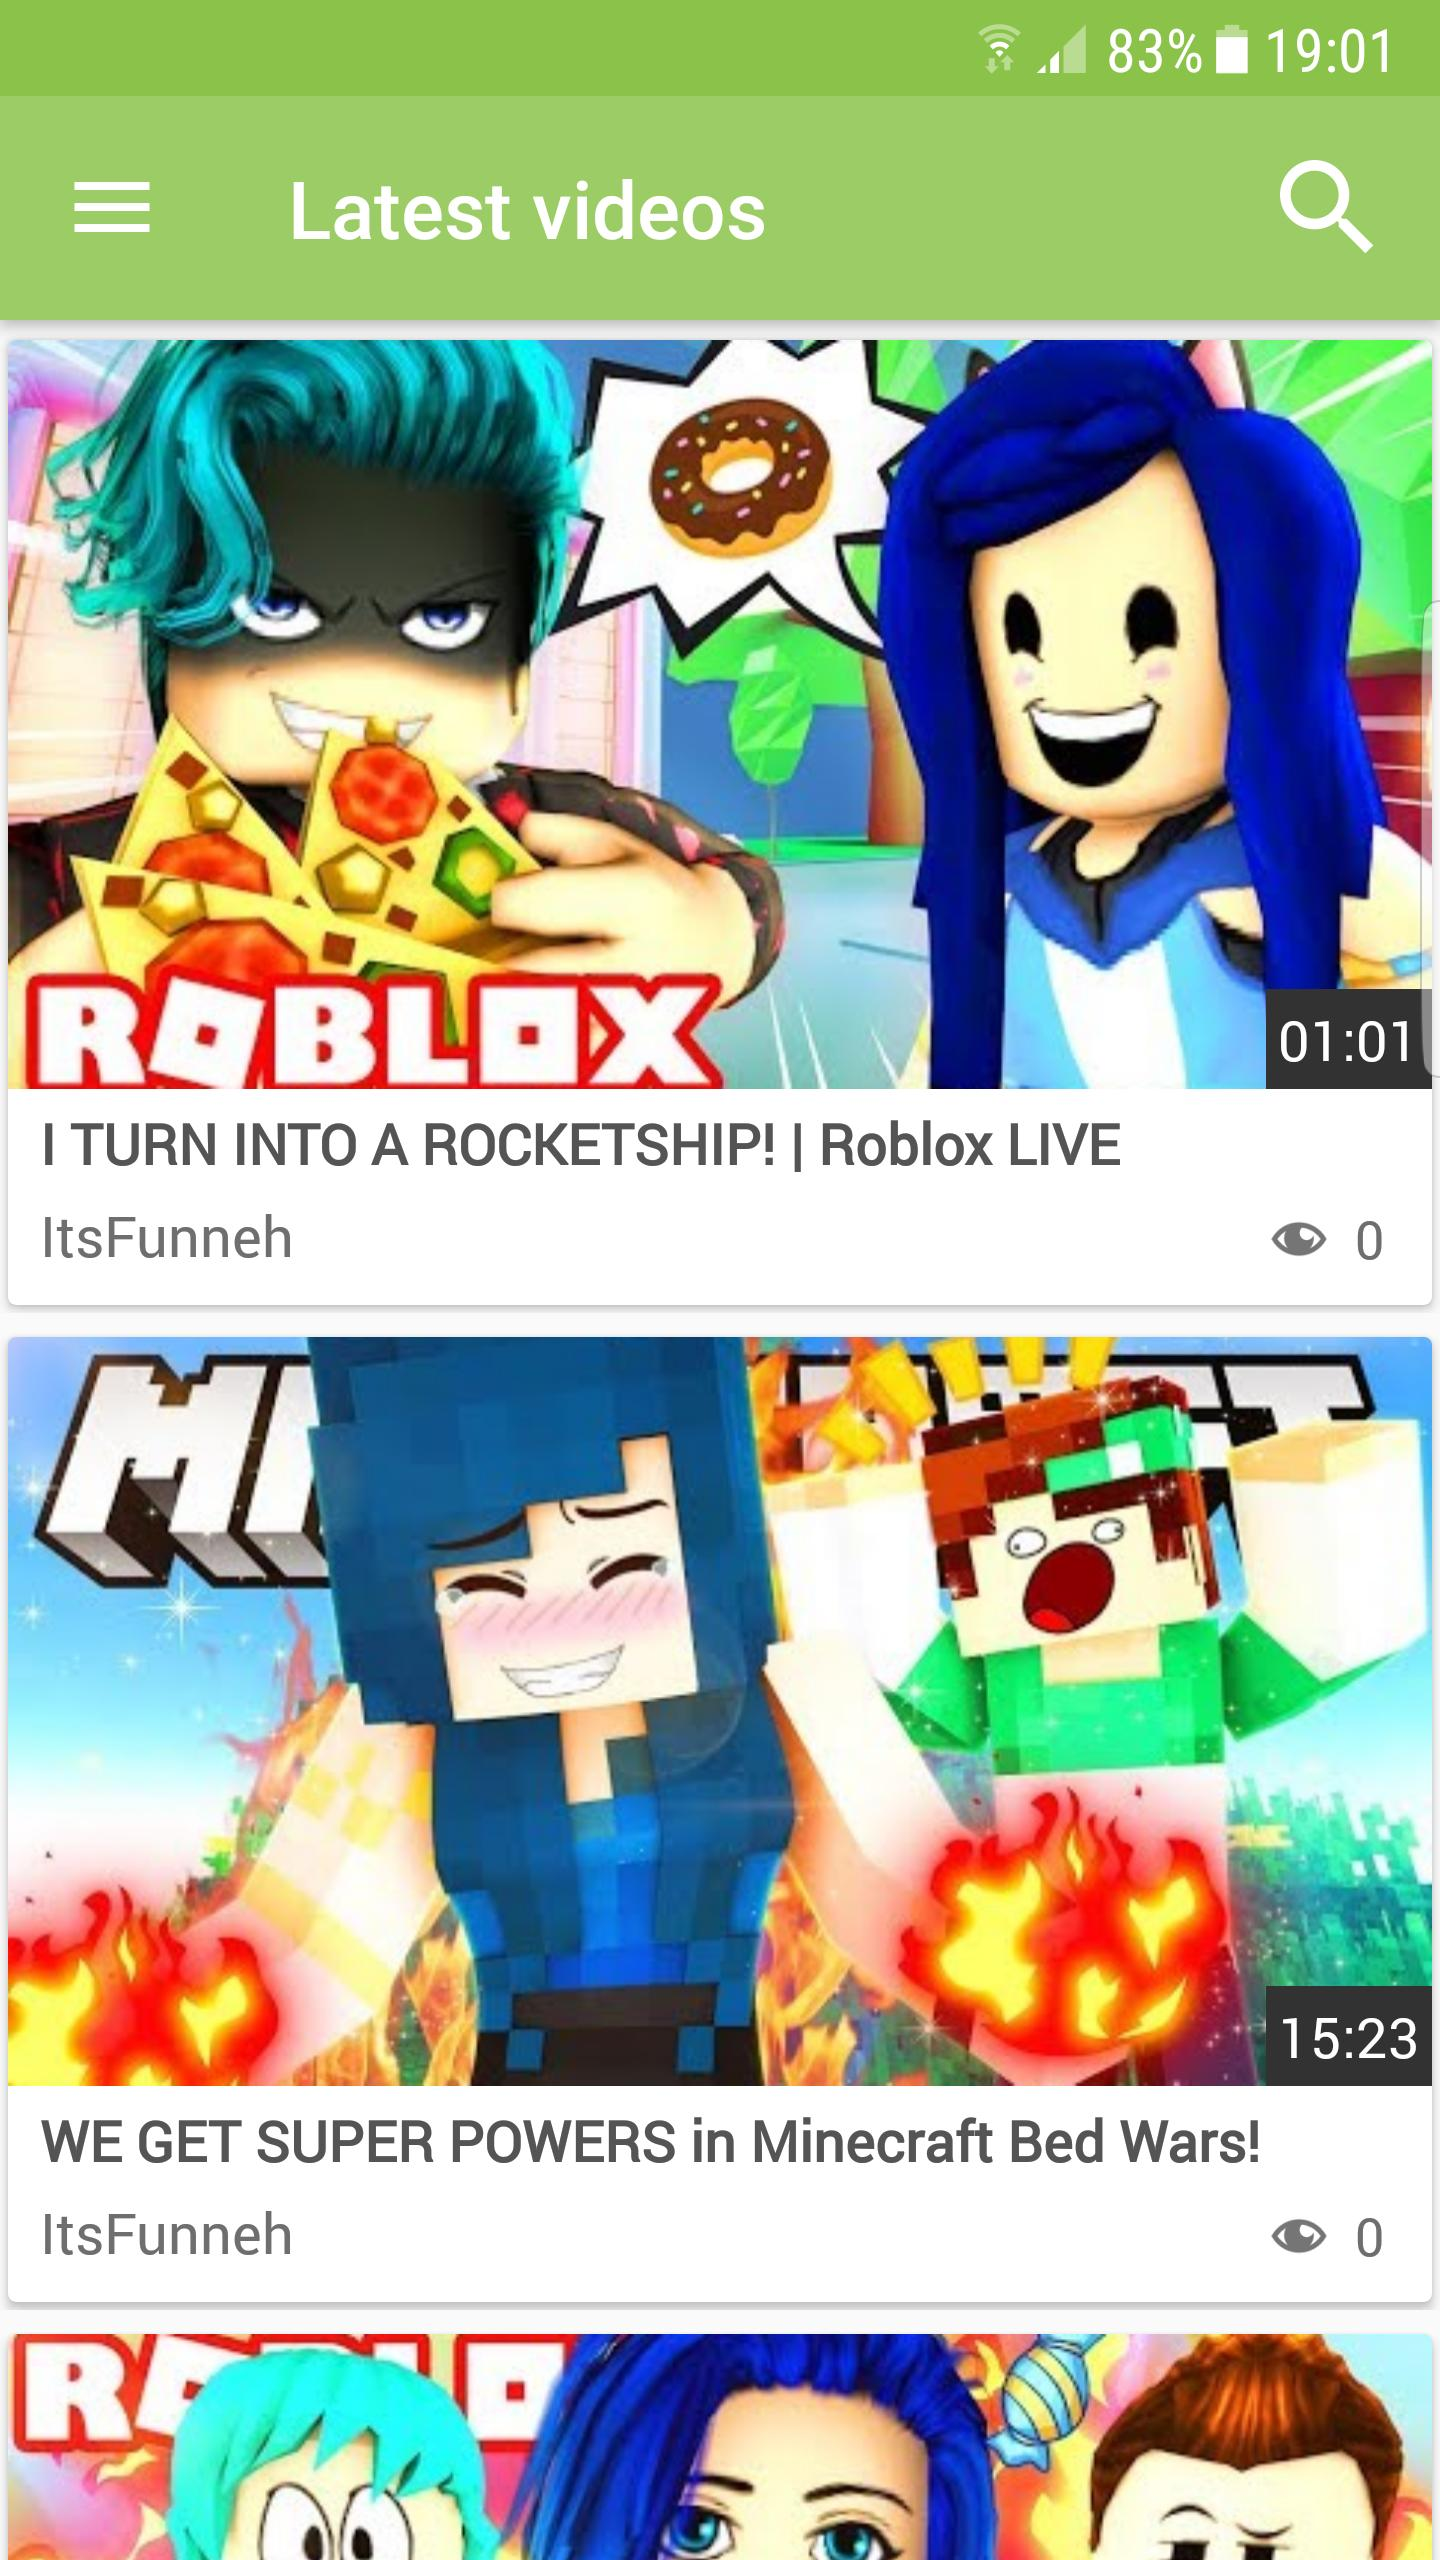 Itsfunneh Roblox Video For Android Apk Download Itsfunneh Roblox Video For Android Apk Download